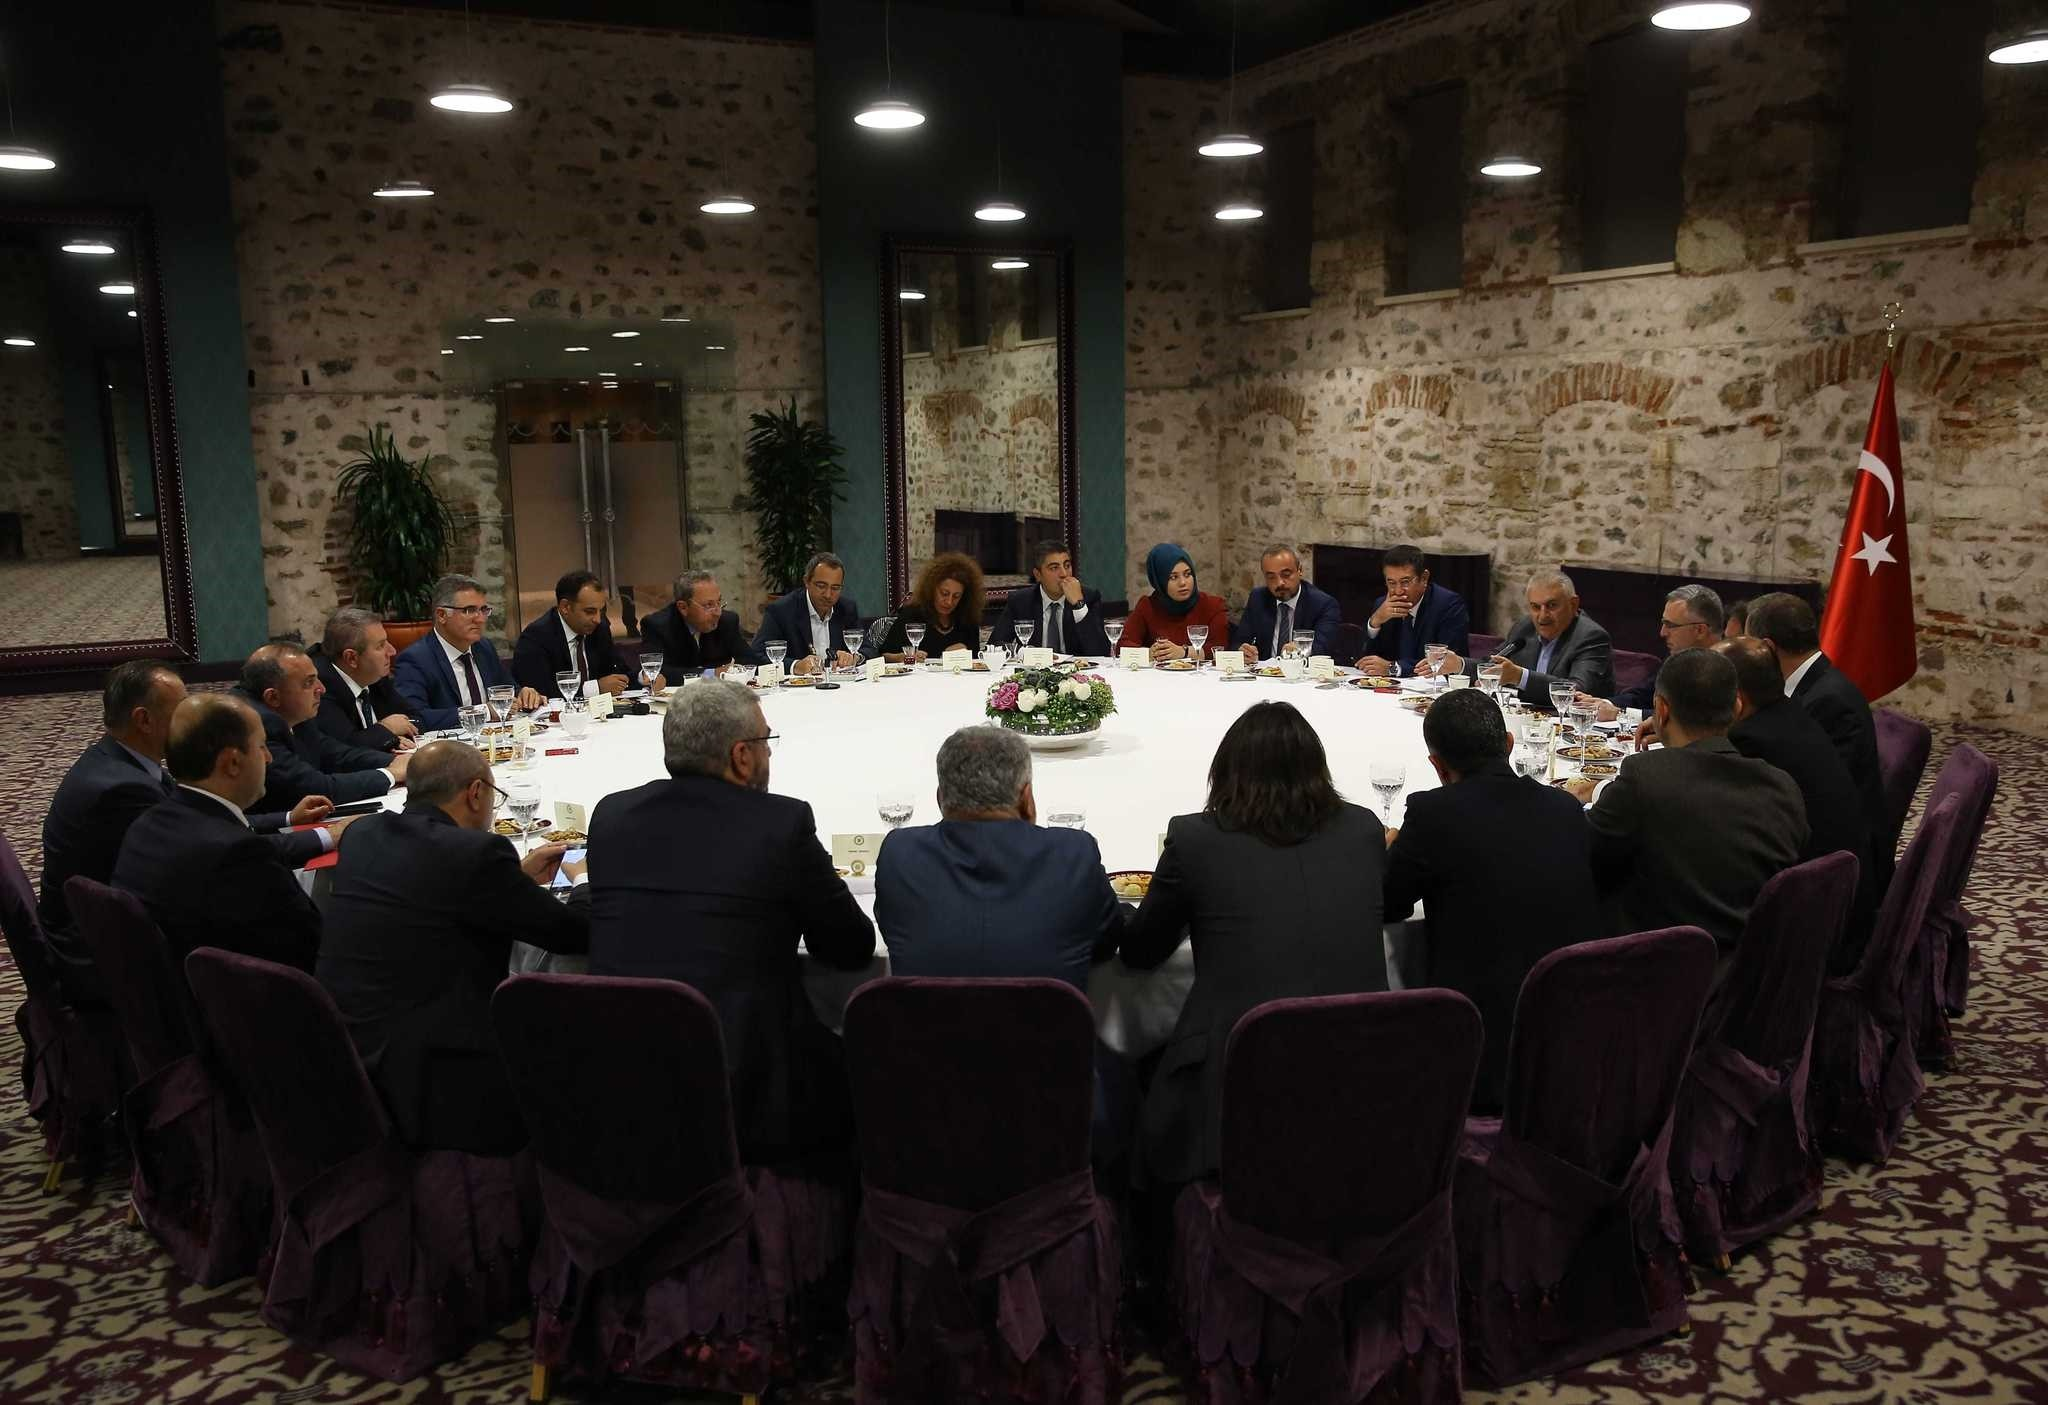 Prime Minister Binali Yu0131ldu0131ru0131m held a special meeting with economy editors of national newspaper at Dolmabahu00e7e Prime Ministry Office in Istanbul on Saturday.